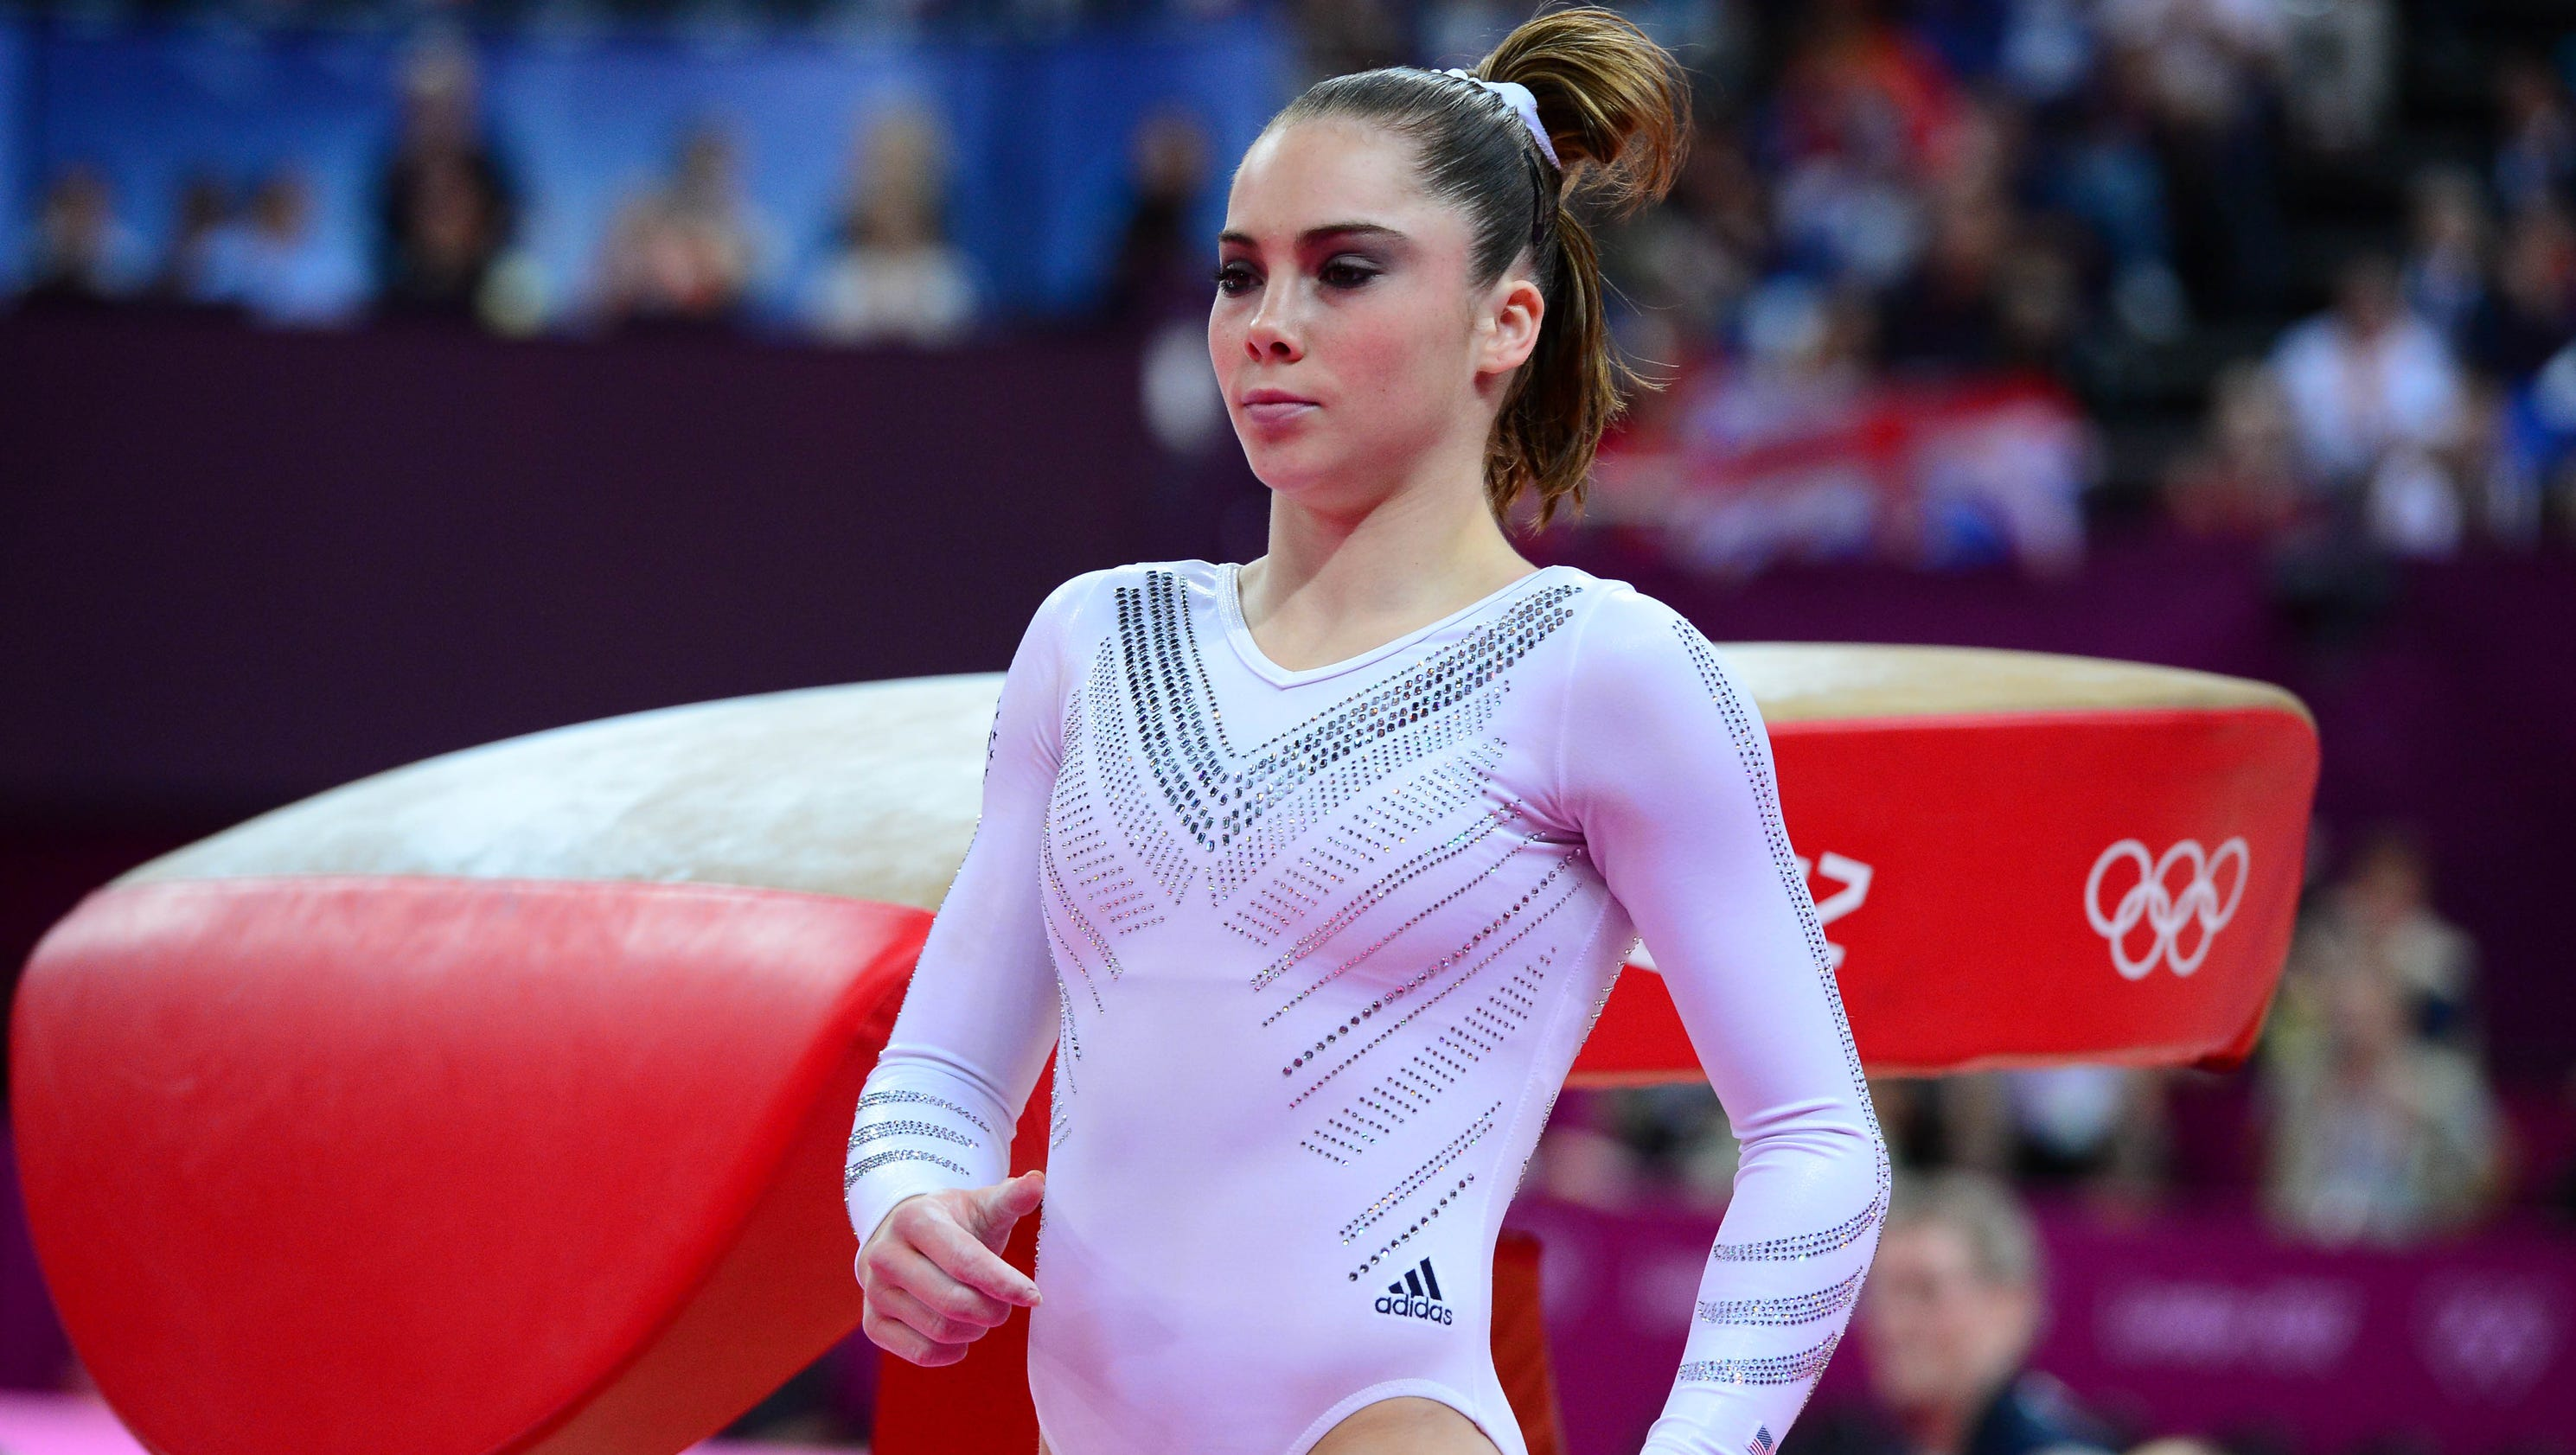 Hollywoodlifecom Olympic Gold Medalist Mckayla Maroney Says She Was Victim